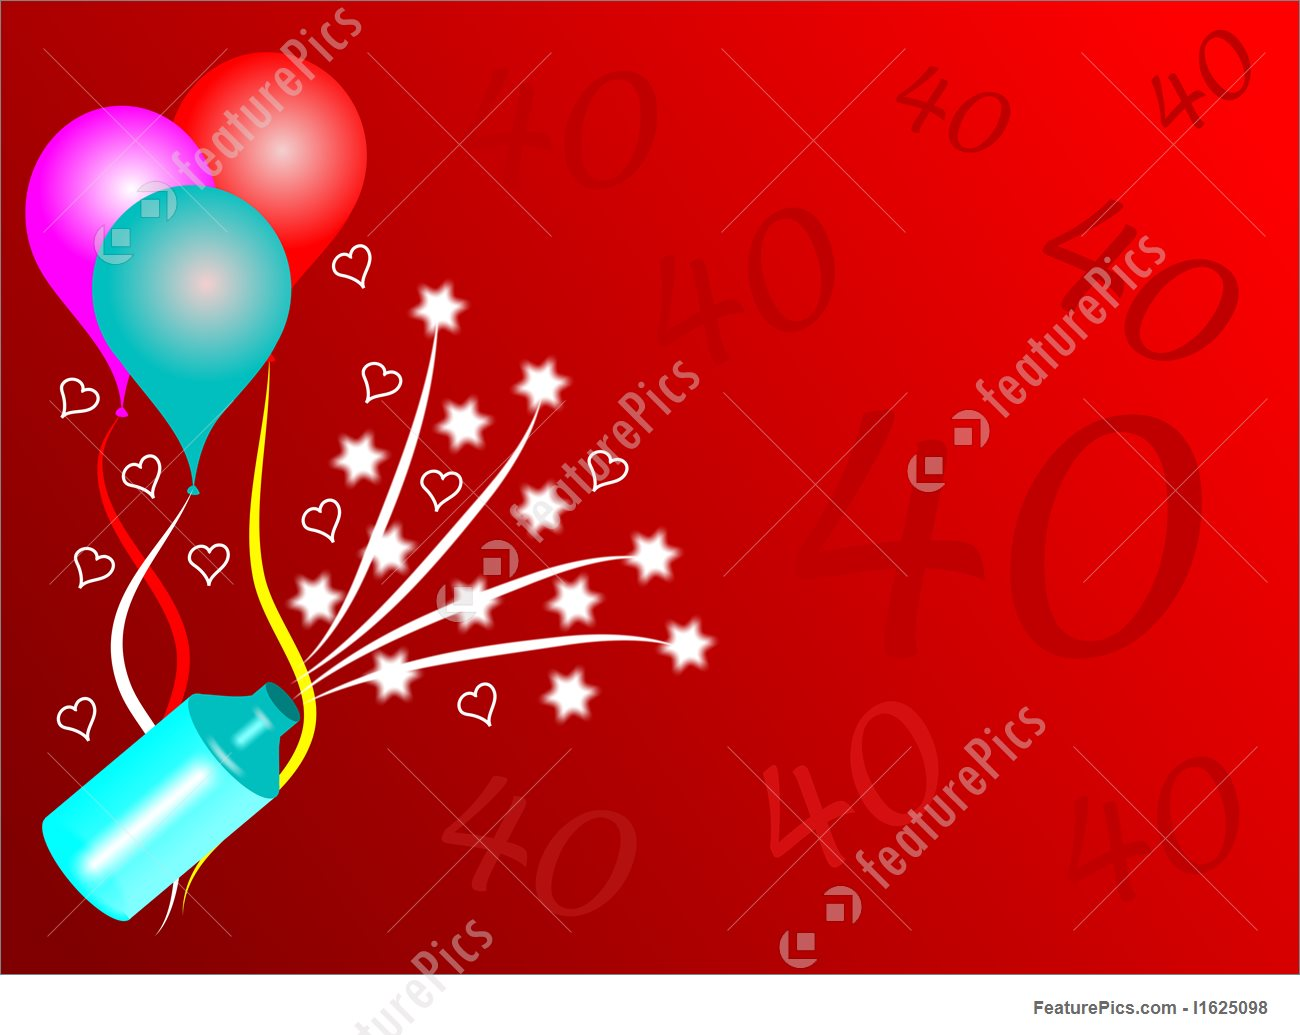 40th birthday background images ; fortieth-birthday-party-background-stock-illustration-625098